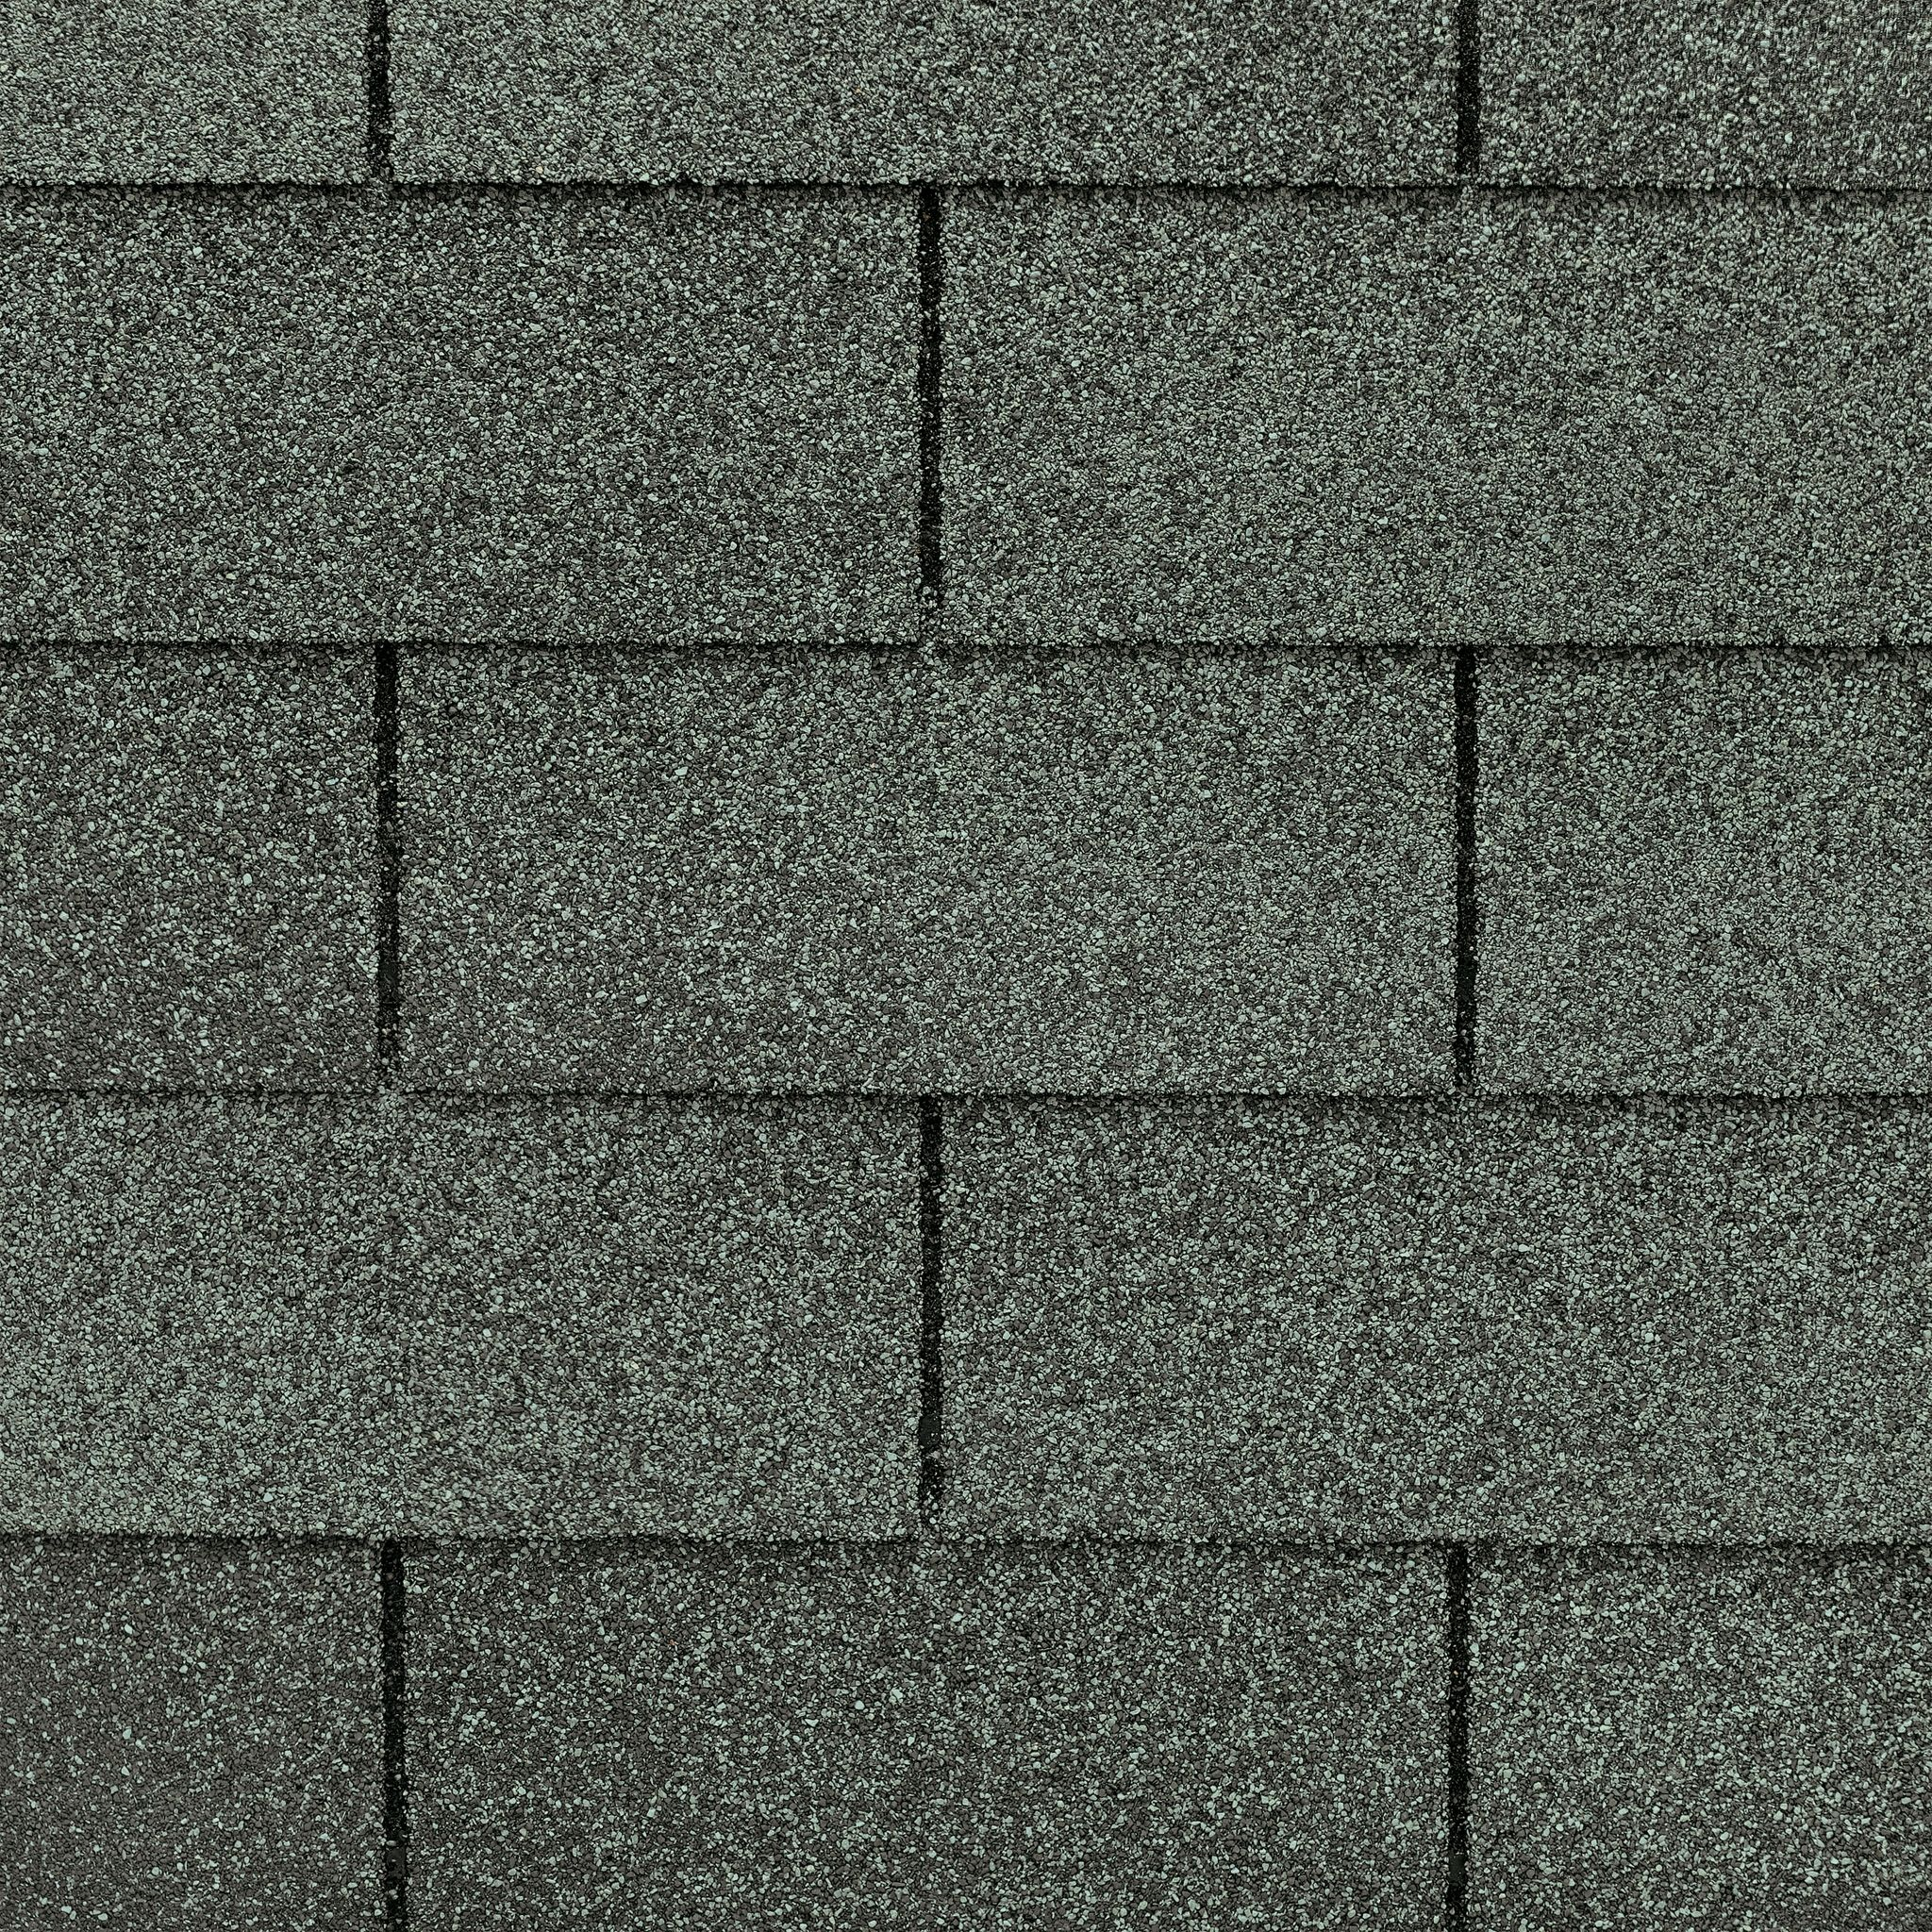 Slate Royal Sovereign Shingles Kansas City Roof Installation Brown Roofing Com Roof Shingle Colors Shingle Colors Shingling